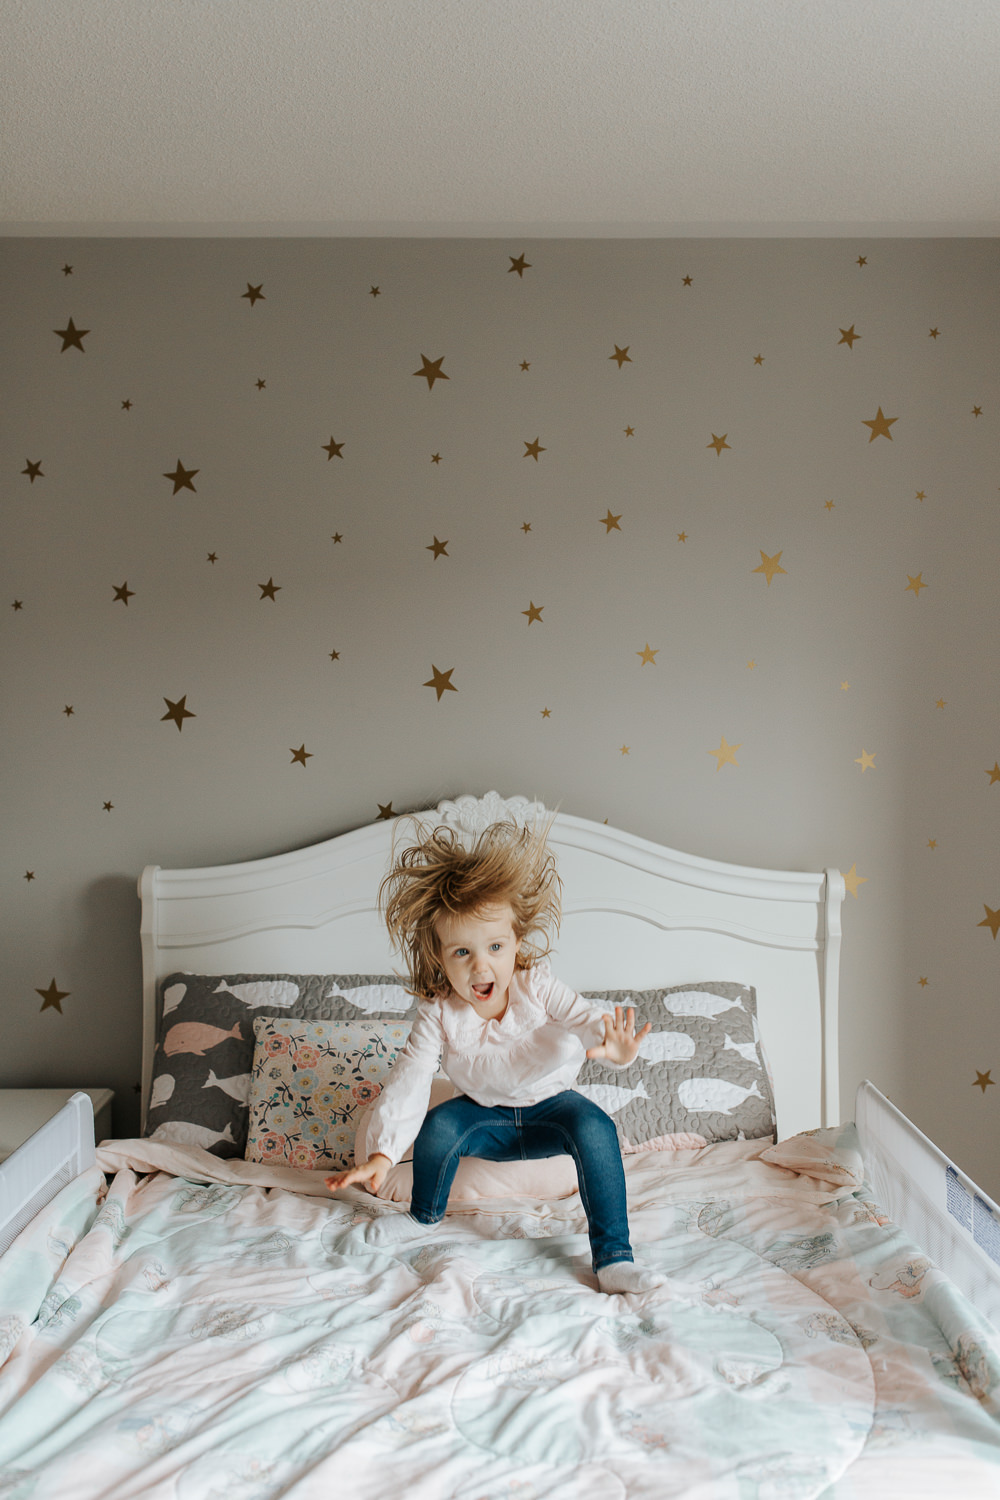 Blonde 2 year old toddler girl jumping on bed, hair flying in the air, big smile on face - York Region In-Home Photography